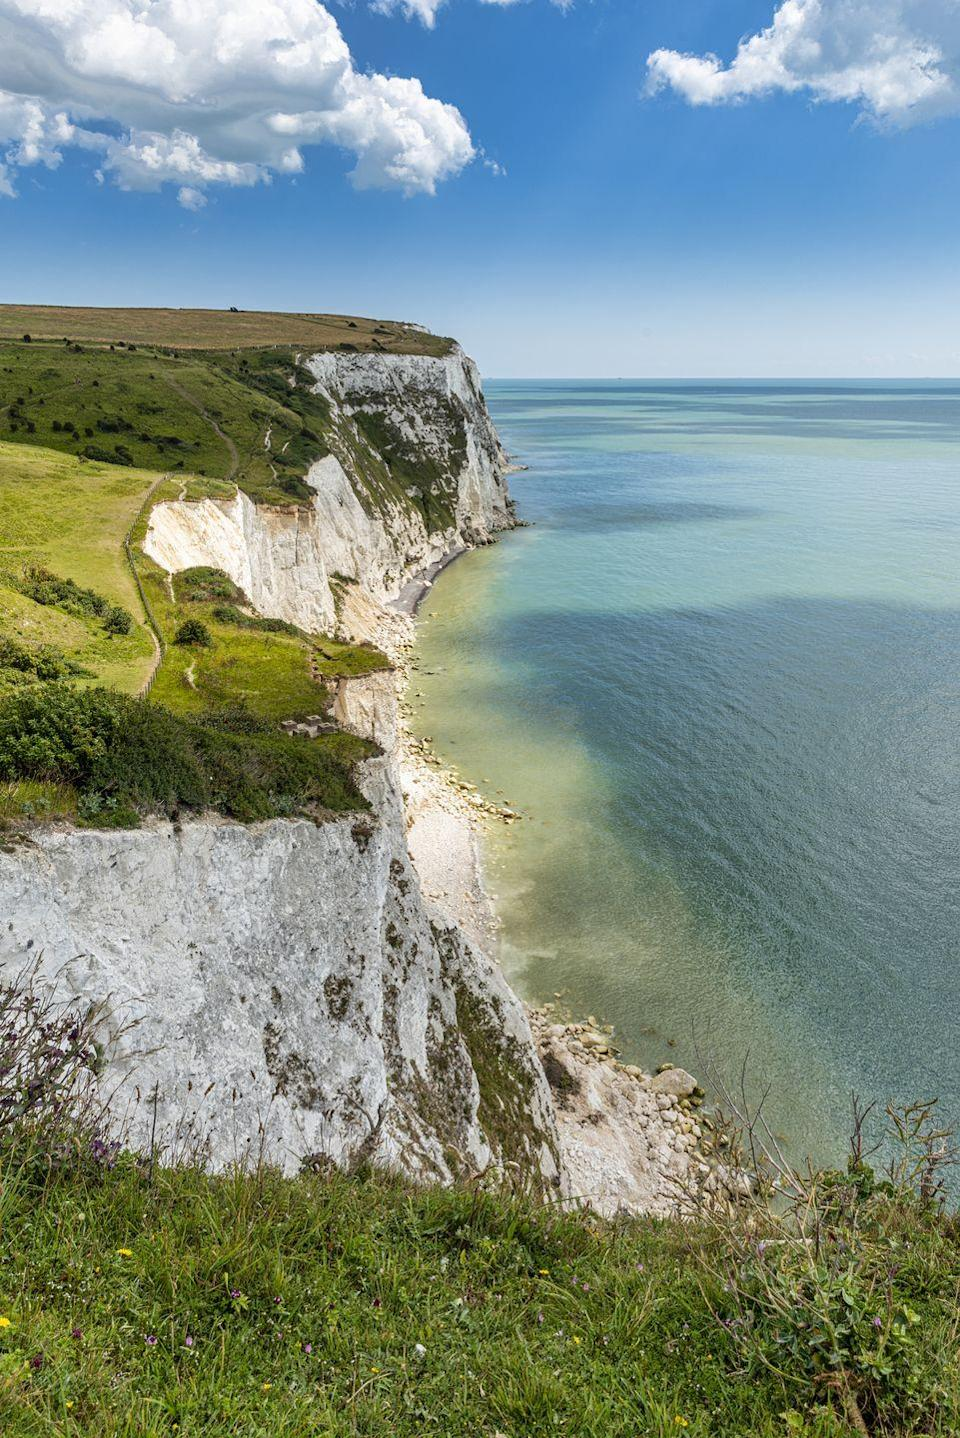 "<p>Scoring 19% in the study, the beautiful White Cliffs of Dover are perhaps one of the most famous landmarks. Perfect for an afternoon walk. </p><p><strong>READ MORE</strong>: <a href=""https://www.countryliving.com/uk/wildlife/countryside/a33212973/white-cliffs-of-dover-wildlflowers-the-national-trust/"" rel=""nofollow noopener"" target=""_blank"" data-ylk=""slk:The White Cliffs of Dover are covered in wildflowers, birds and butterflies"" class=""link rapid-noclick-resp"">The White Cliffs of Dover are covered in wildflowers, birds and butterflies</a></p>"